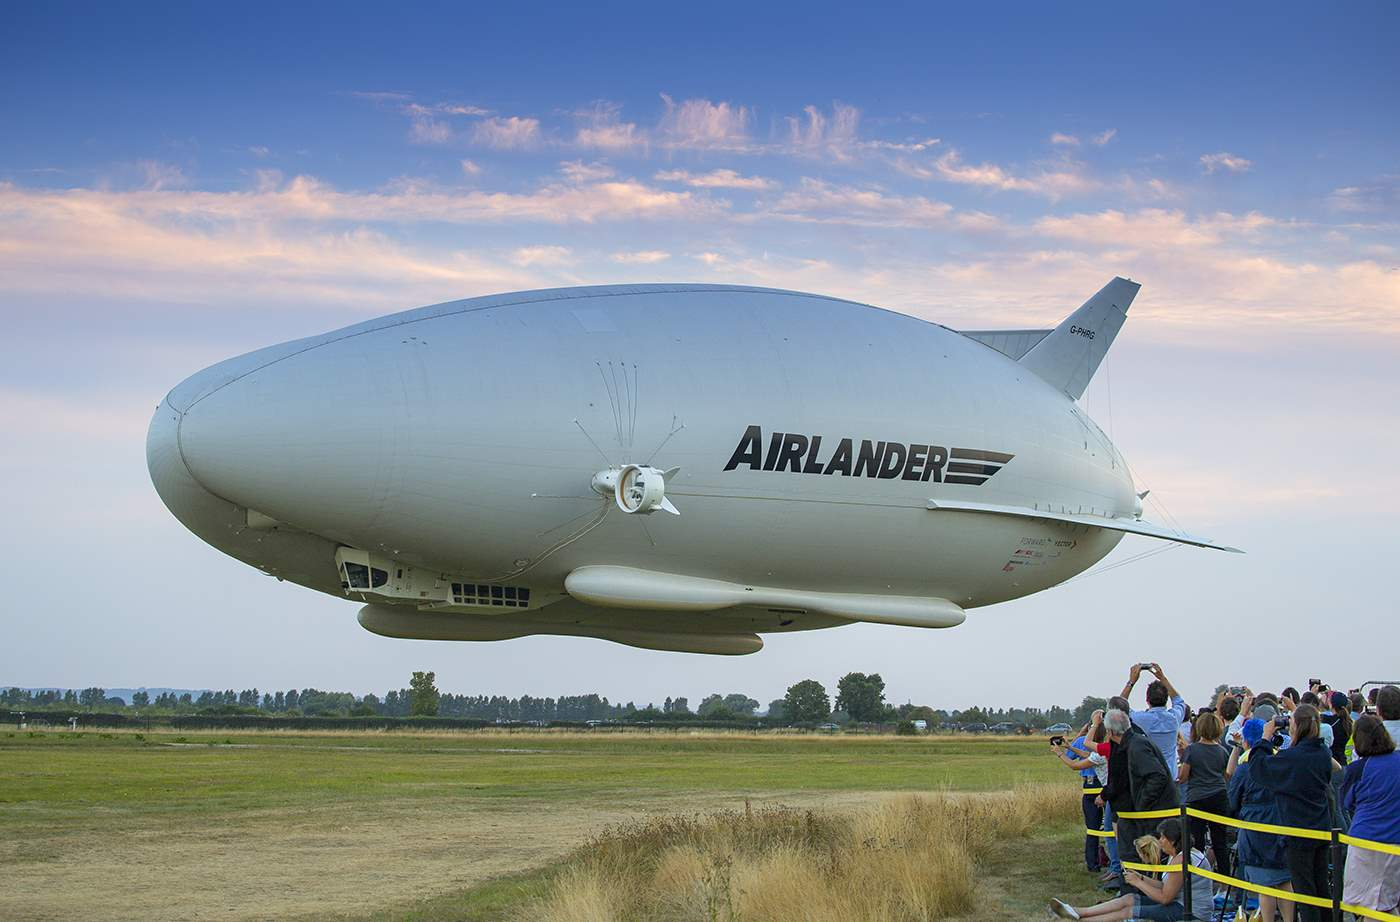 000 Airlander10 must be credited  courtesy of Hybrid Air Vehicles Ltd (1)